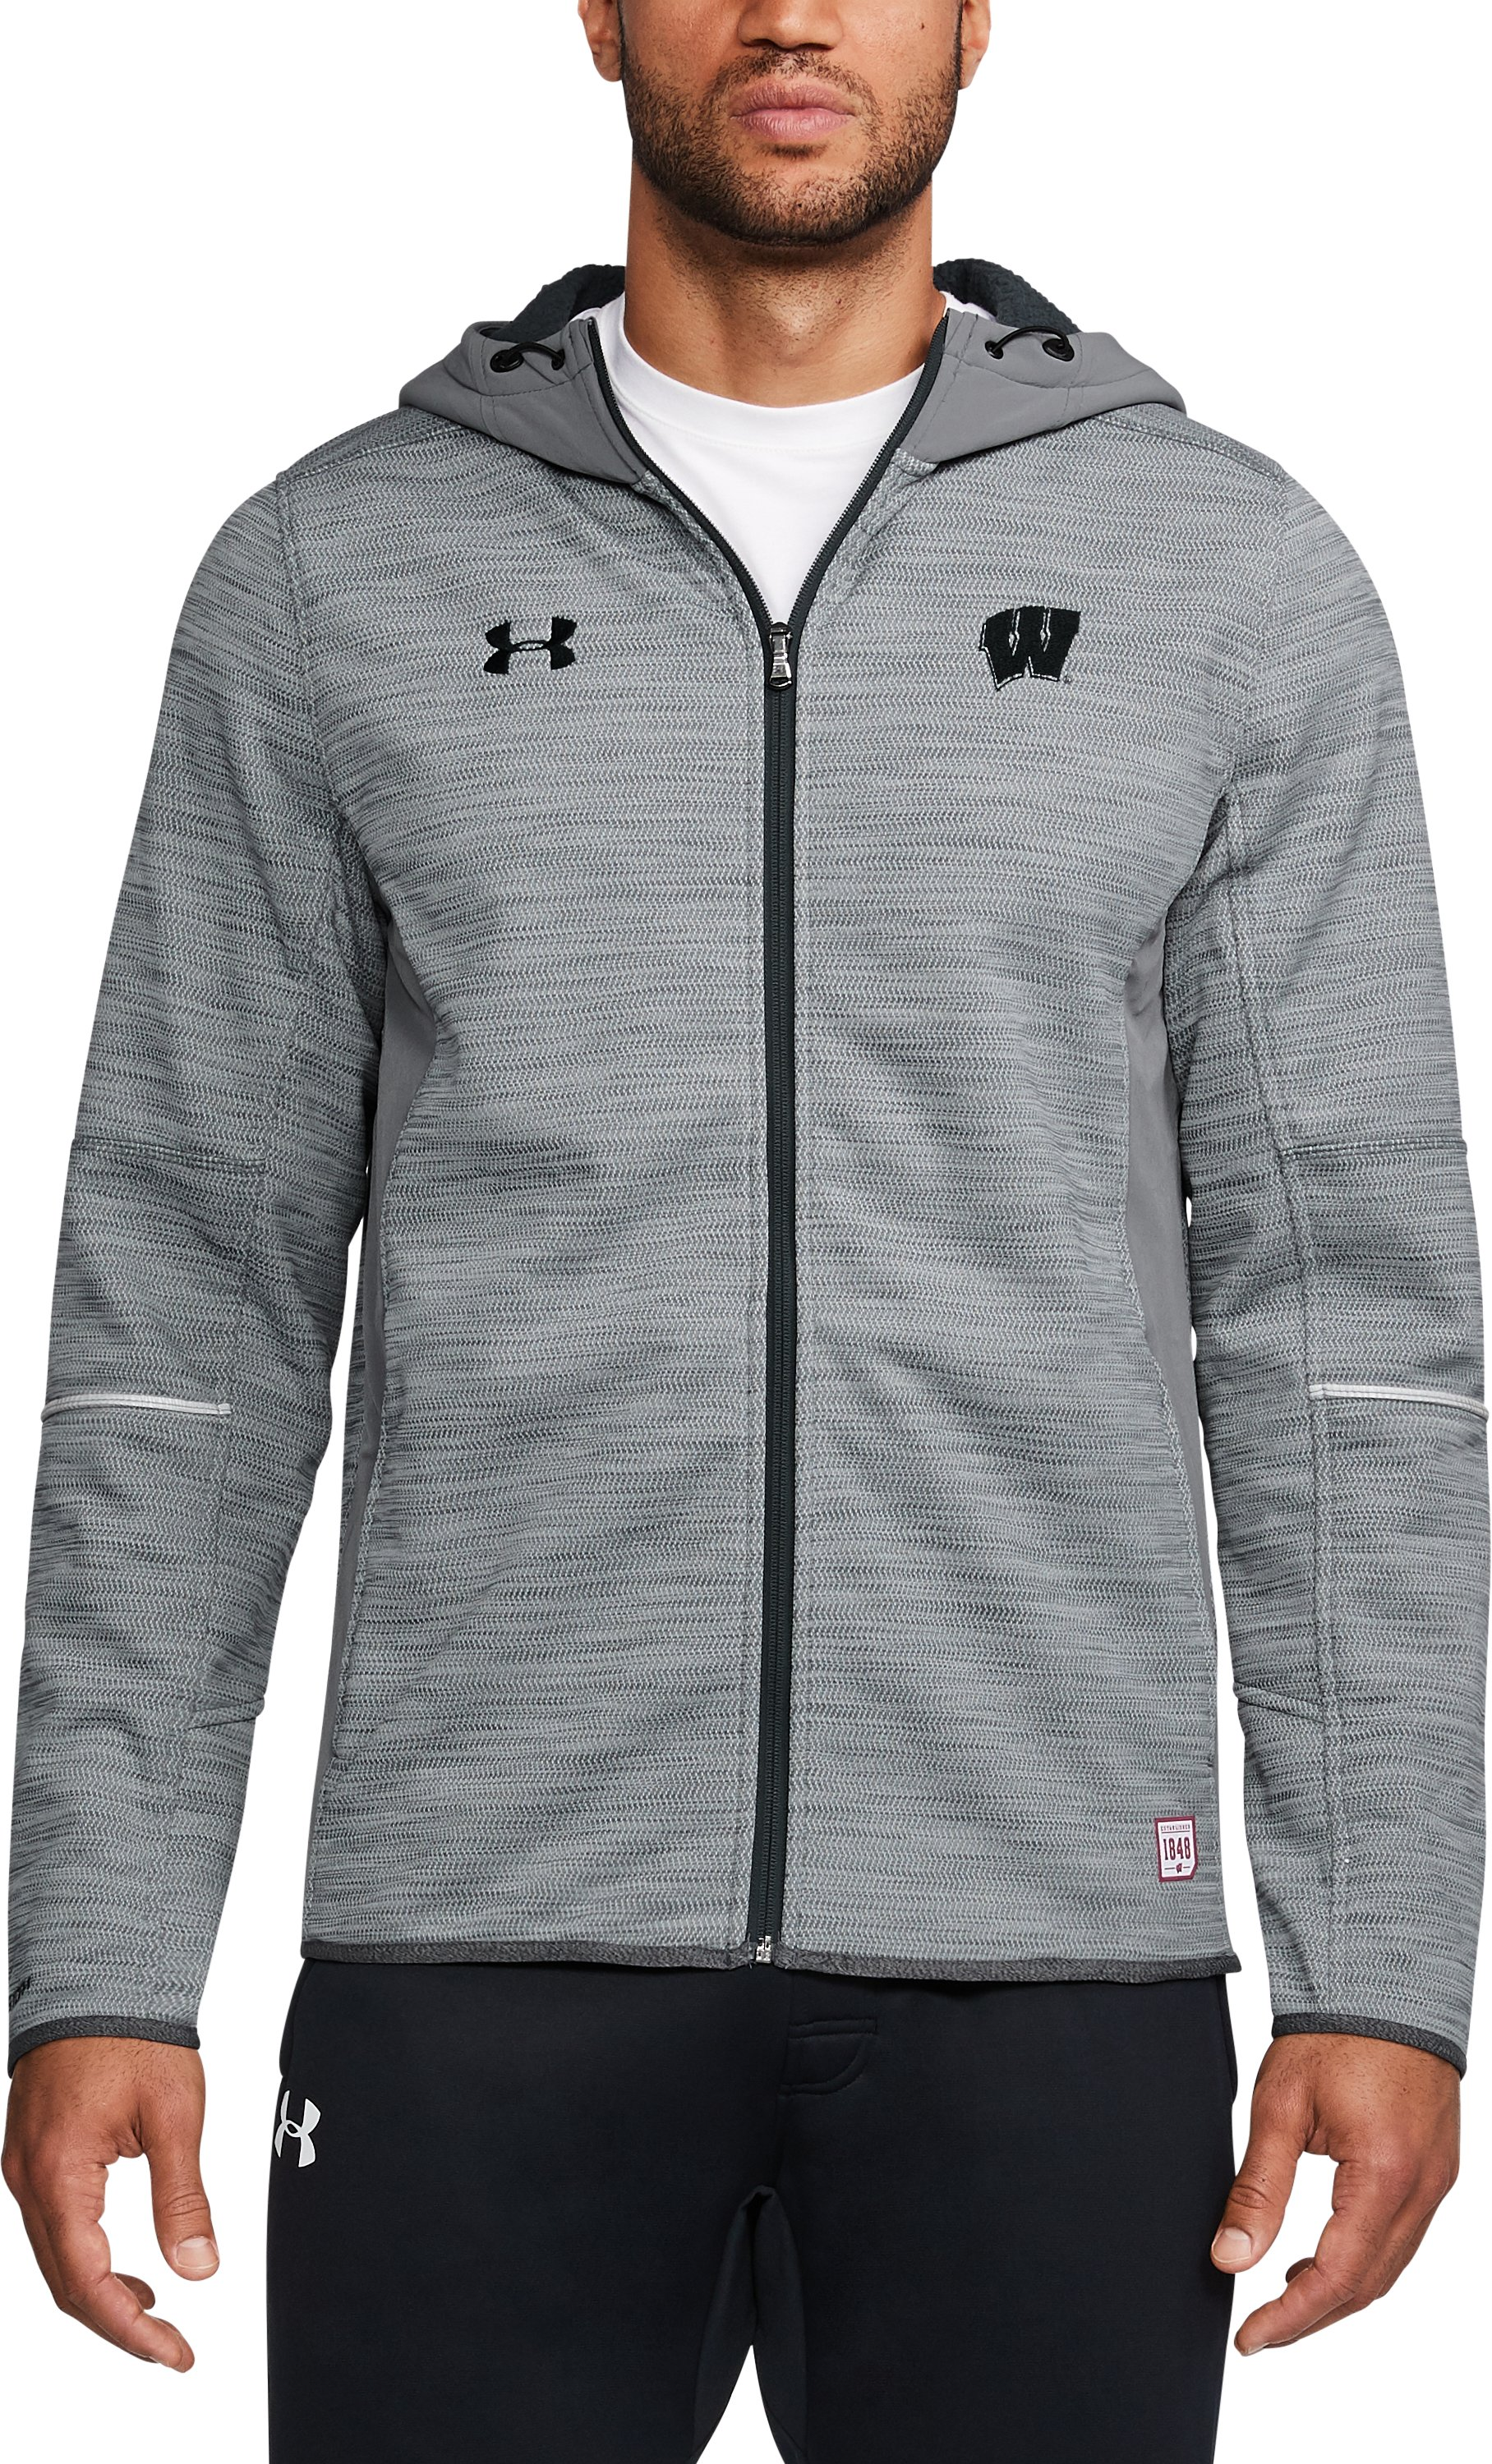 Men's Wisconsin UA Swacket, Graphite